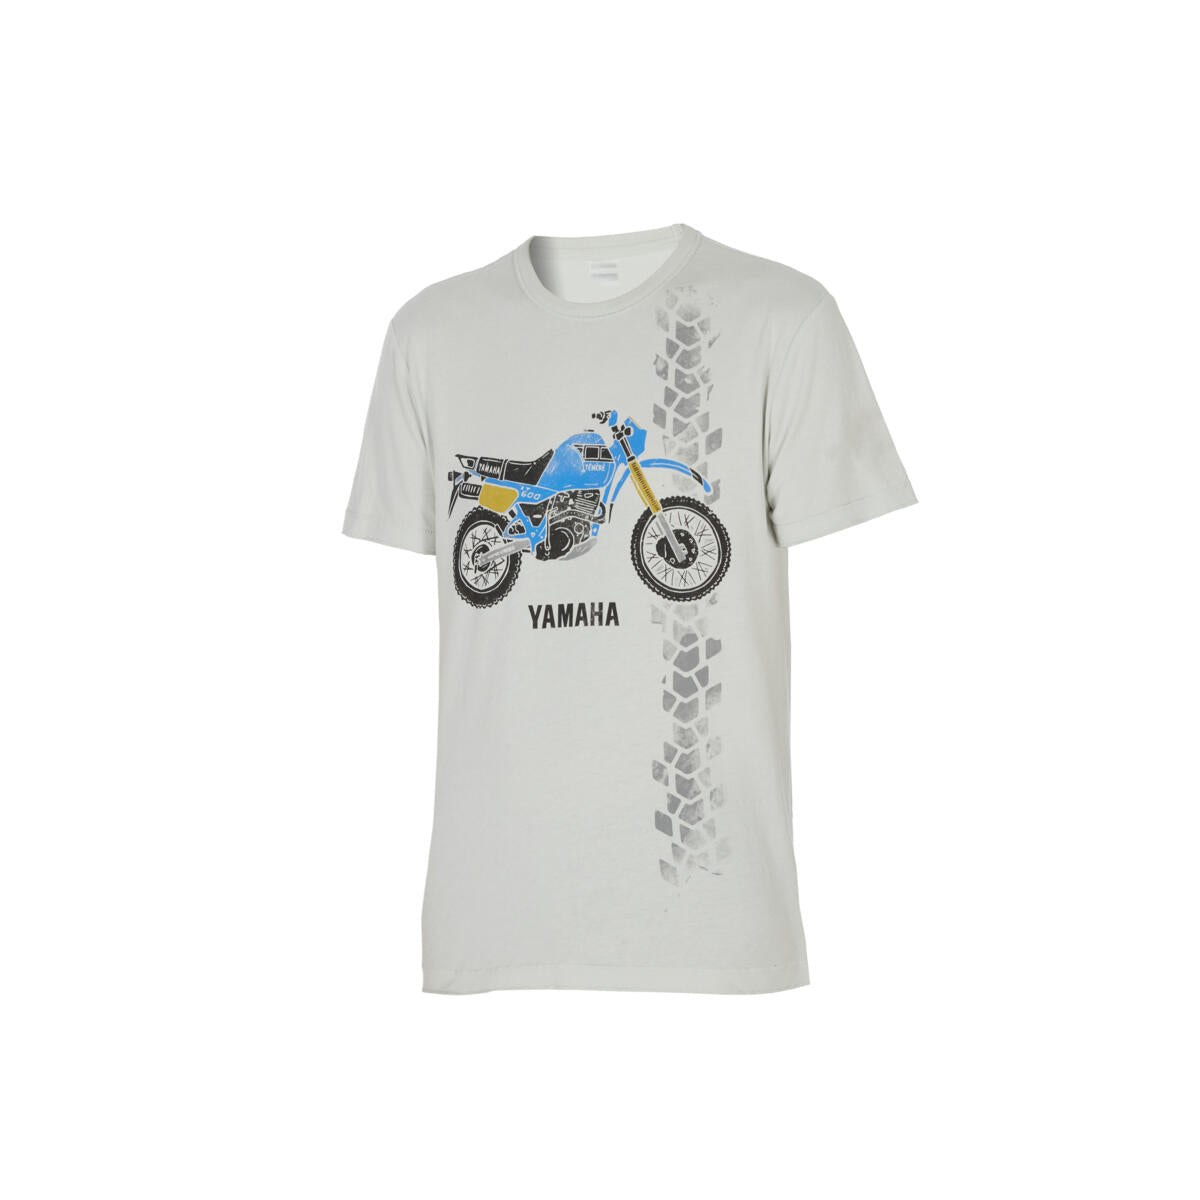 Men's Faster Sons Ténéré T-shirt NAVARRO